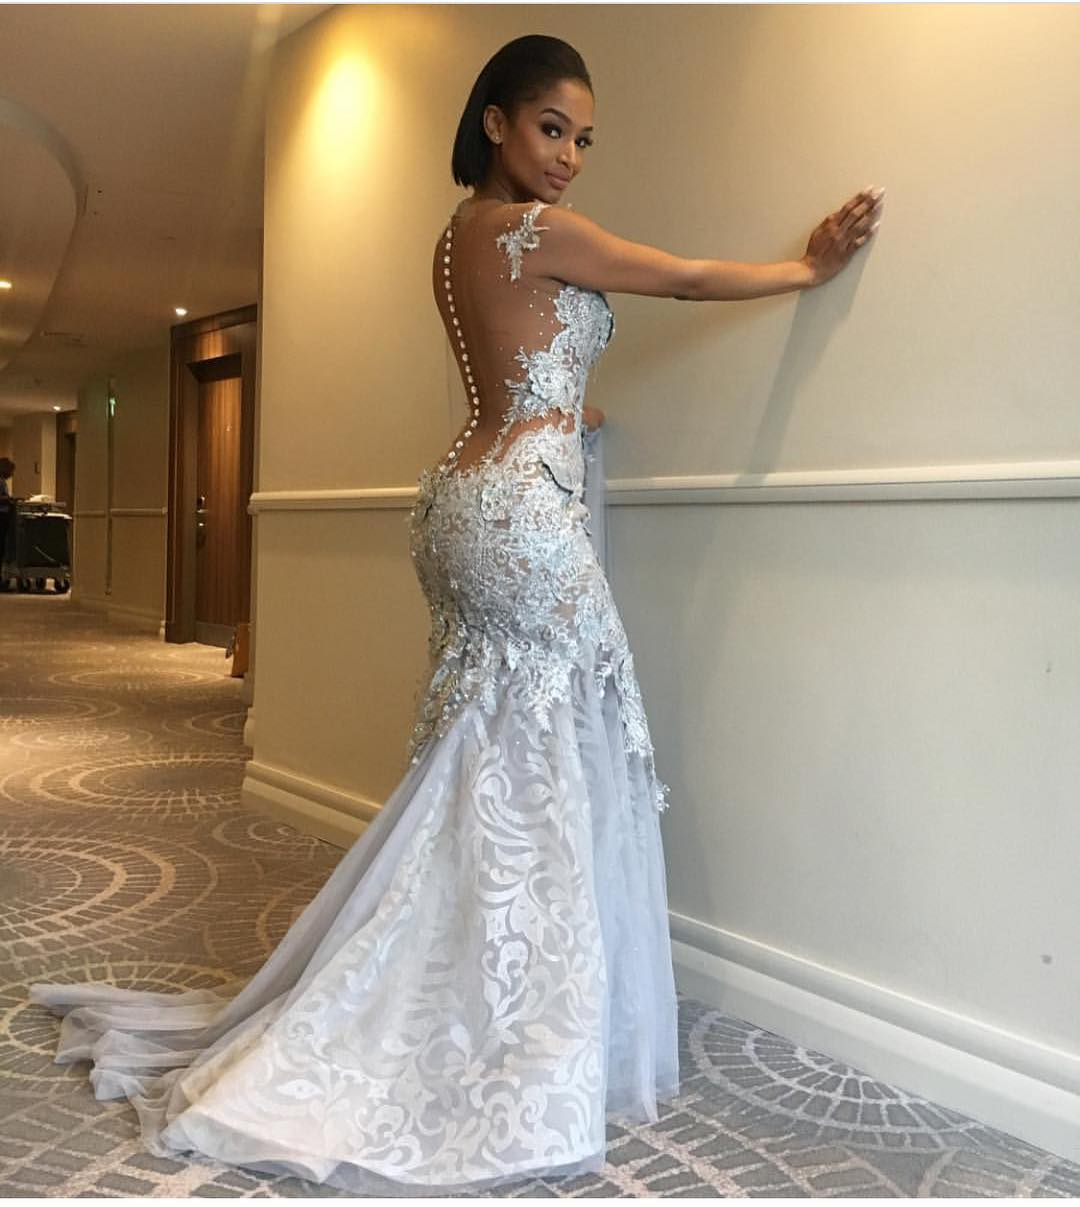 Serving Brides Some Wedding Reception Outfits A Million Styles Africa